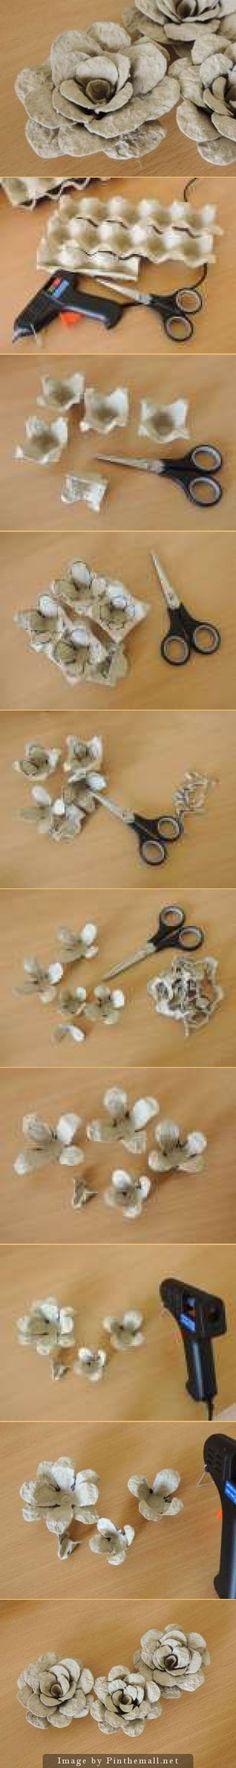 The whole detailed photo tutorial on how to make these egg carton flowers - Tuto. - - The whole detailed photo tutorial on how to make these egg carton flowers – Tutorial foto: trandafiri din cofraje de ouă Hobbies And Crafts, Diy And Crafts, Crafts For Kids, Arts And Crafts, Paper Crafts, Upcycled Crafts, Handmade Flowers, Diy Flowers, Fabric Flowers